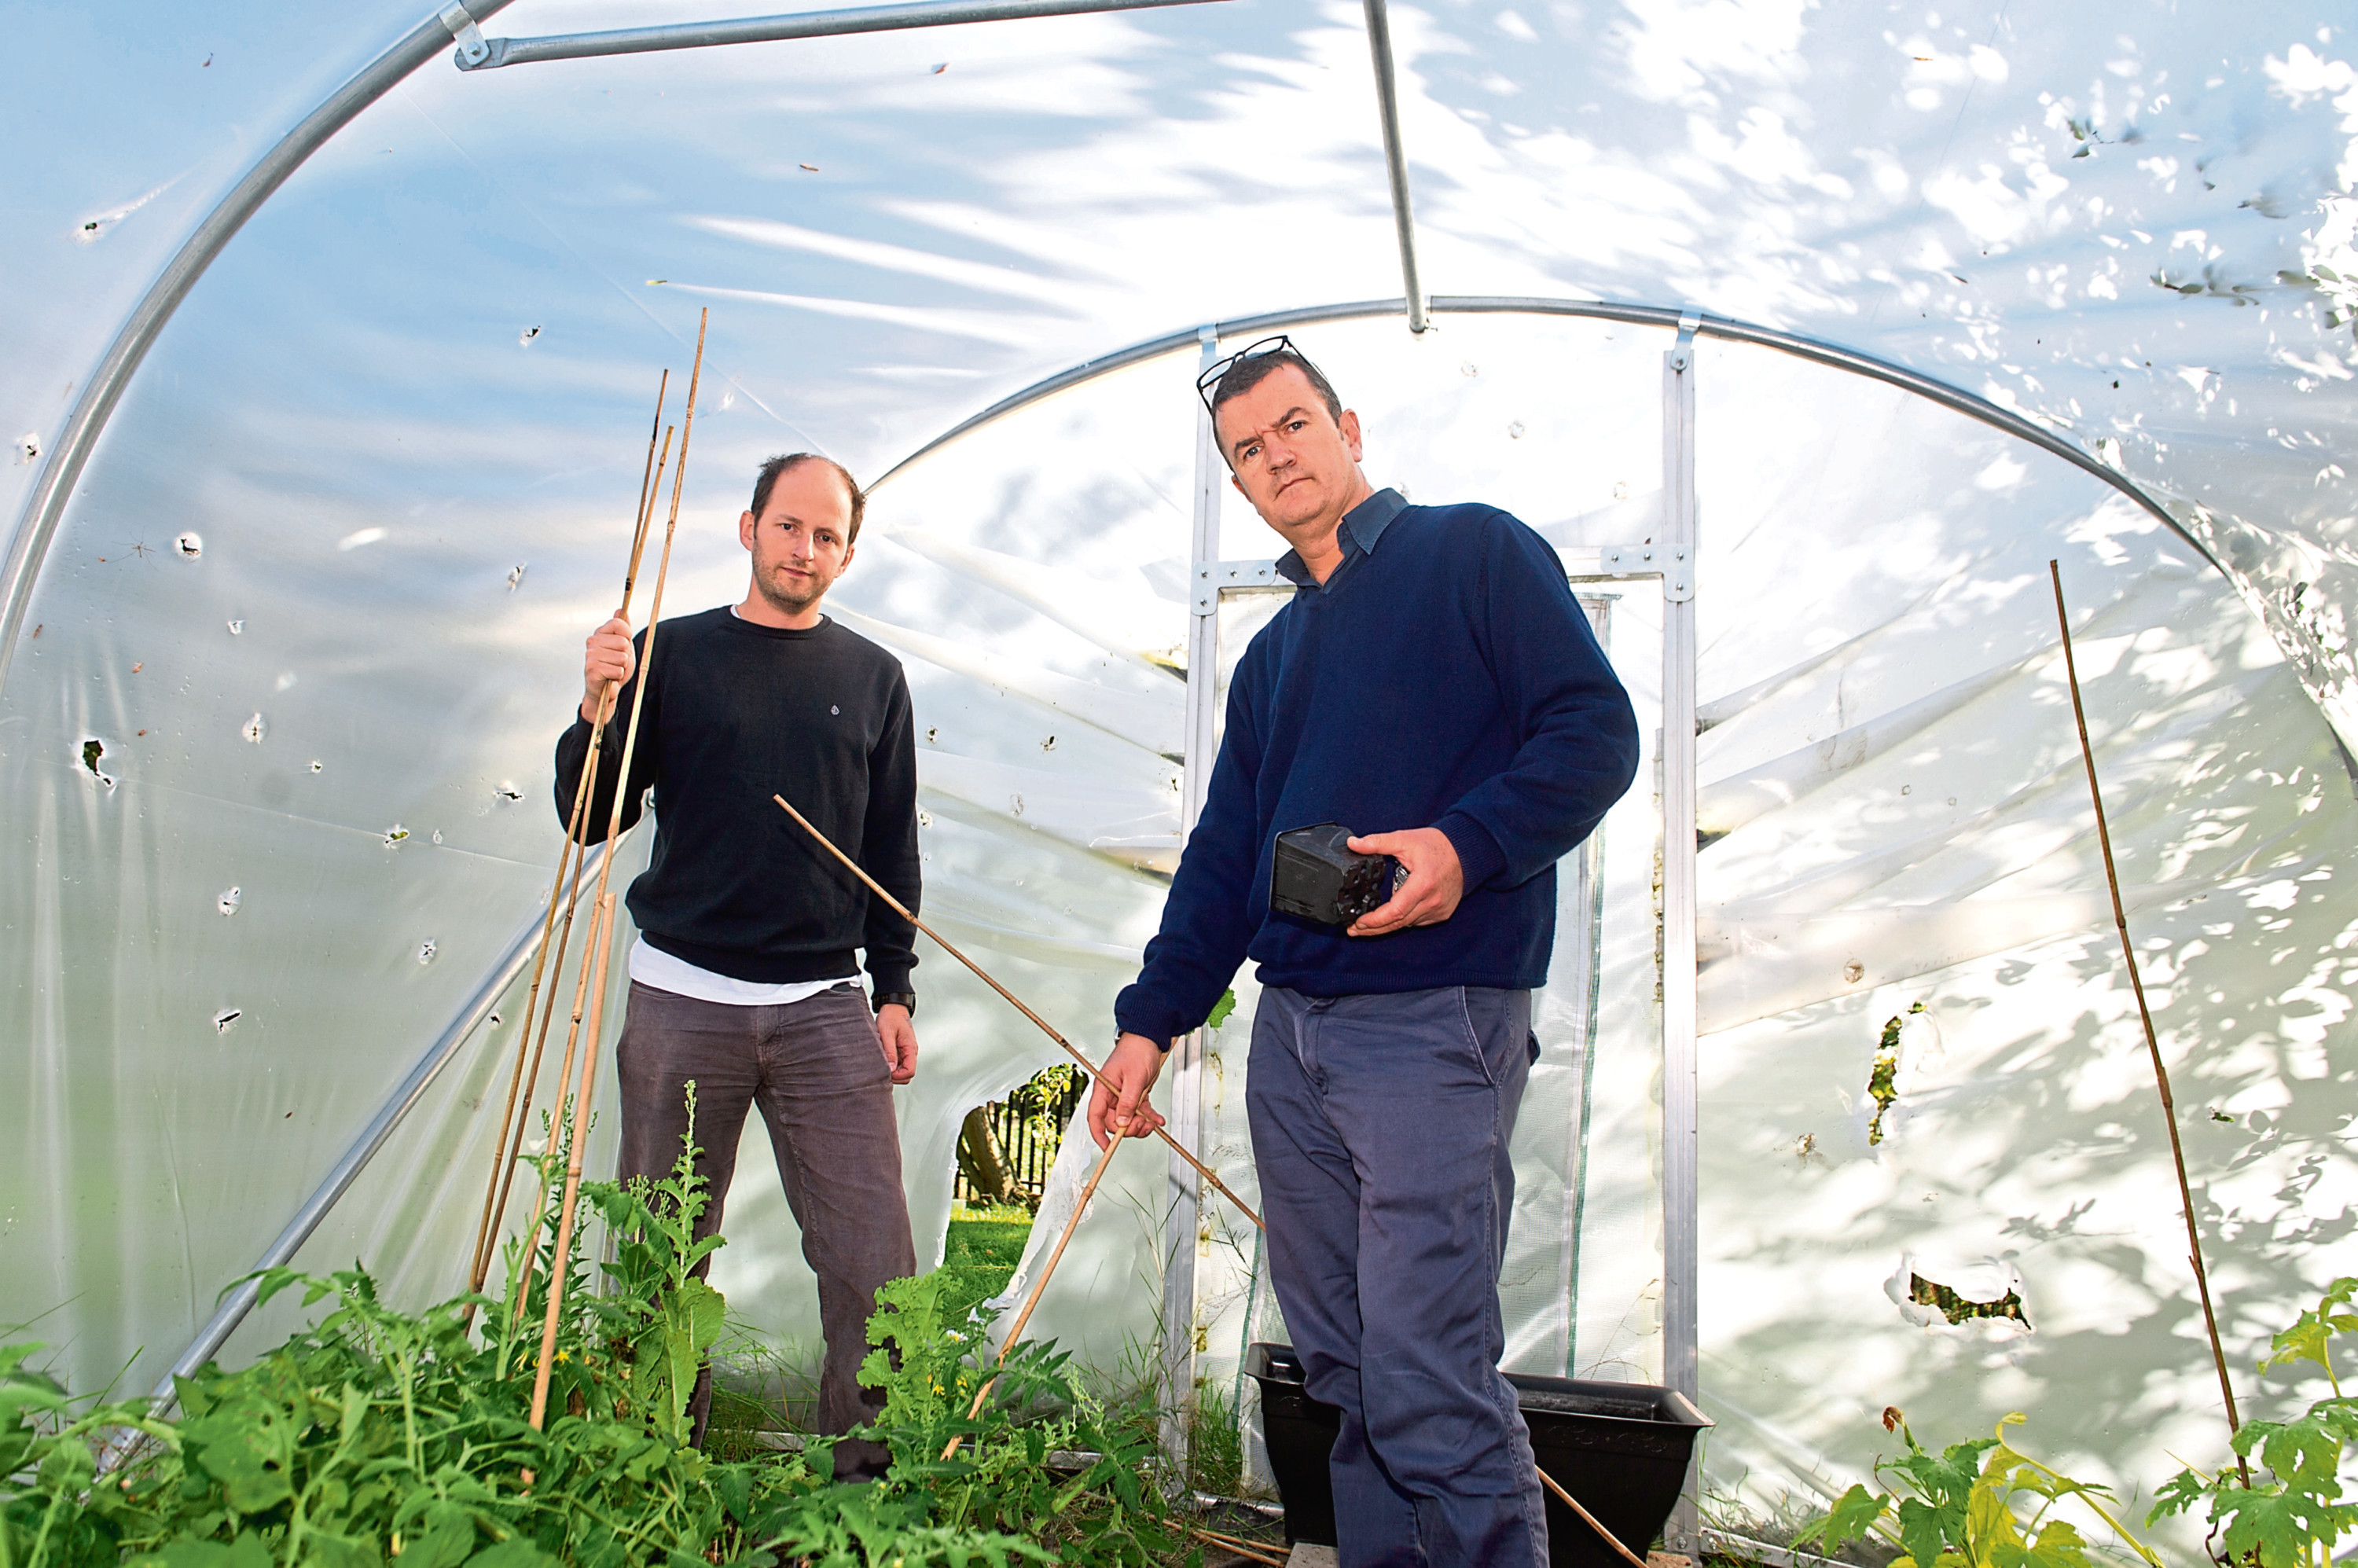 The charity has already installed a polytunnel at its Garden of Hope.